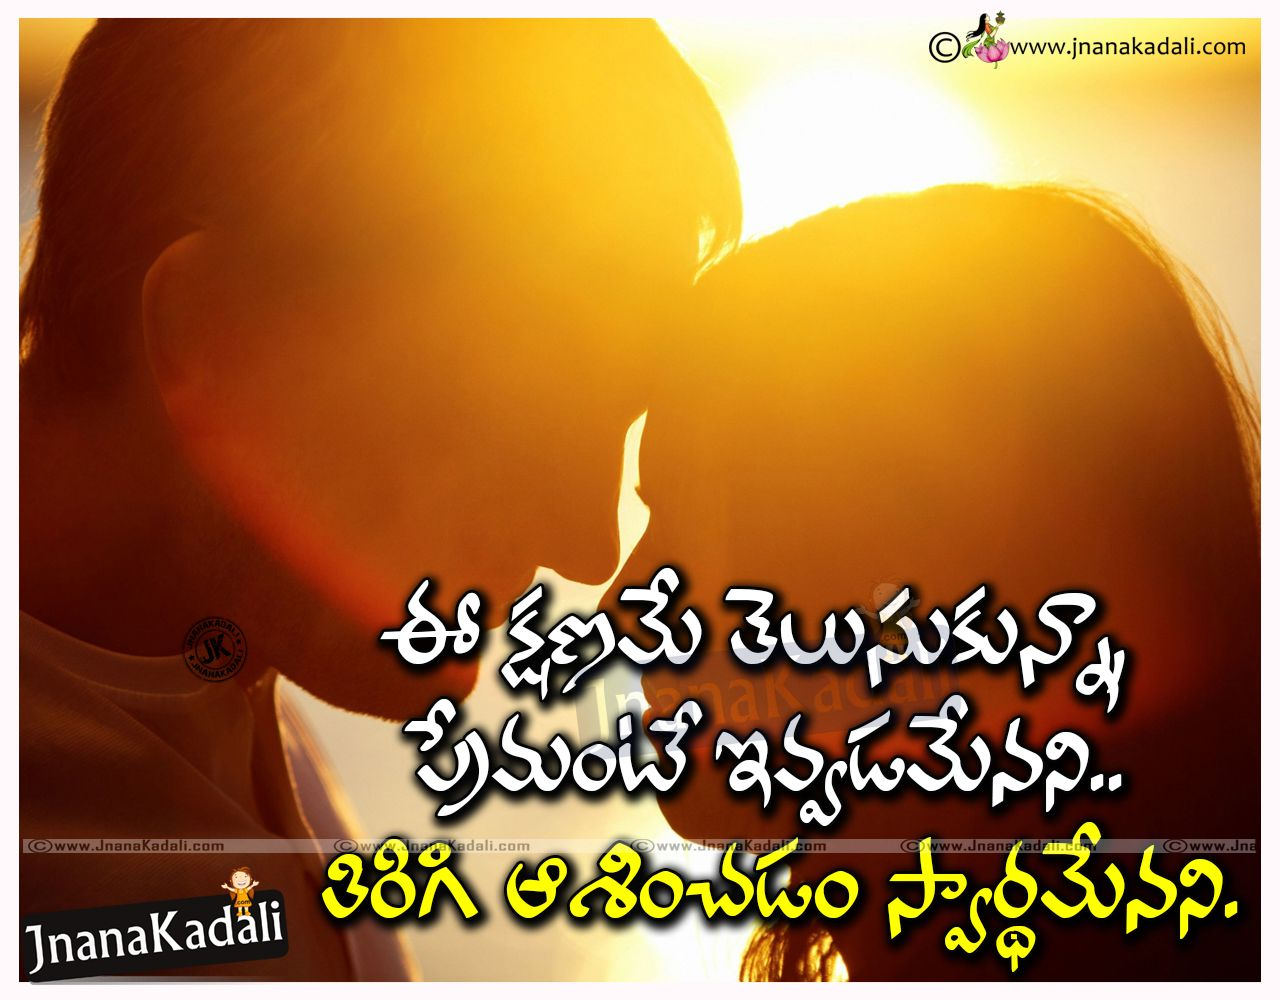 Telugu Love Quotes Romantic Heart Touching Love Quotes In Telugu With Hd Wallpapers